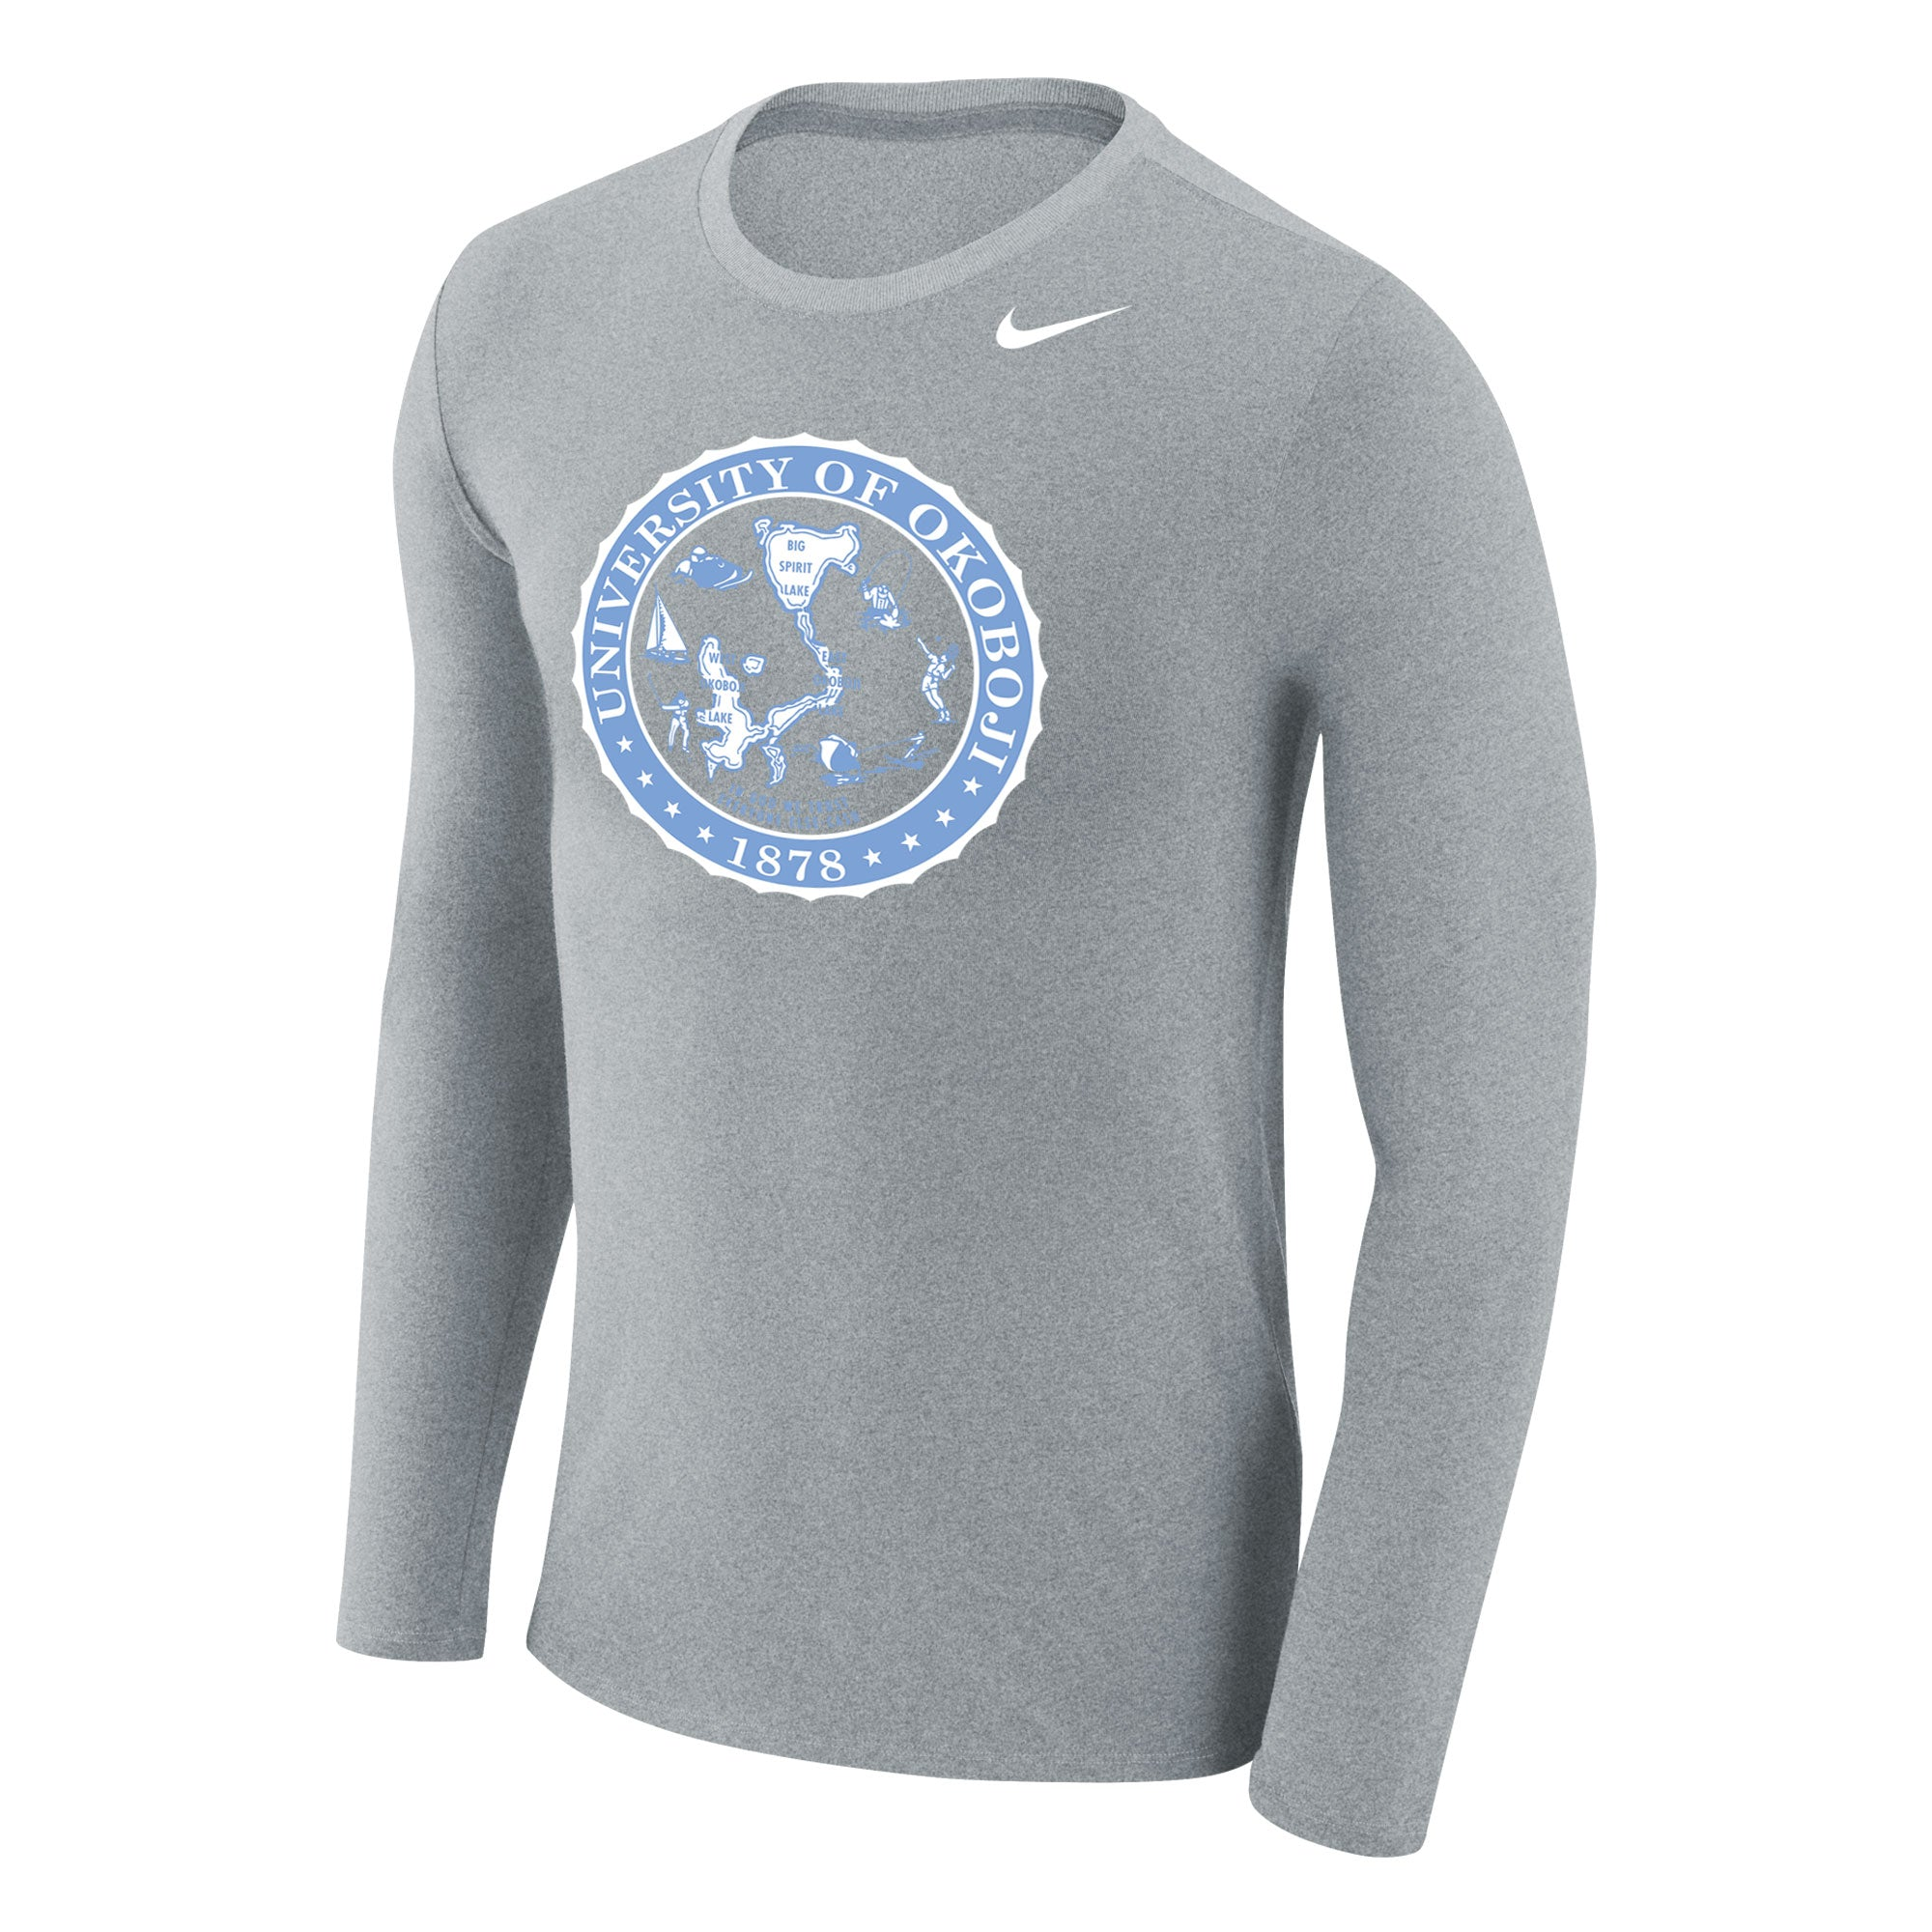 University of Okoboji - Marled Long Sleeve Tee